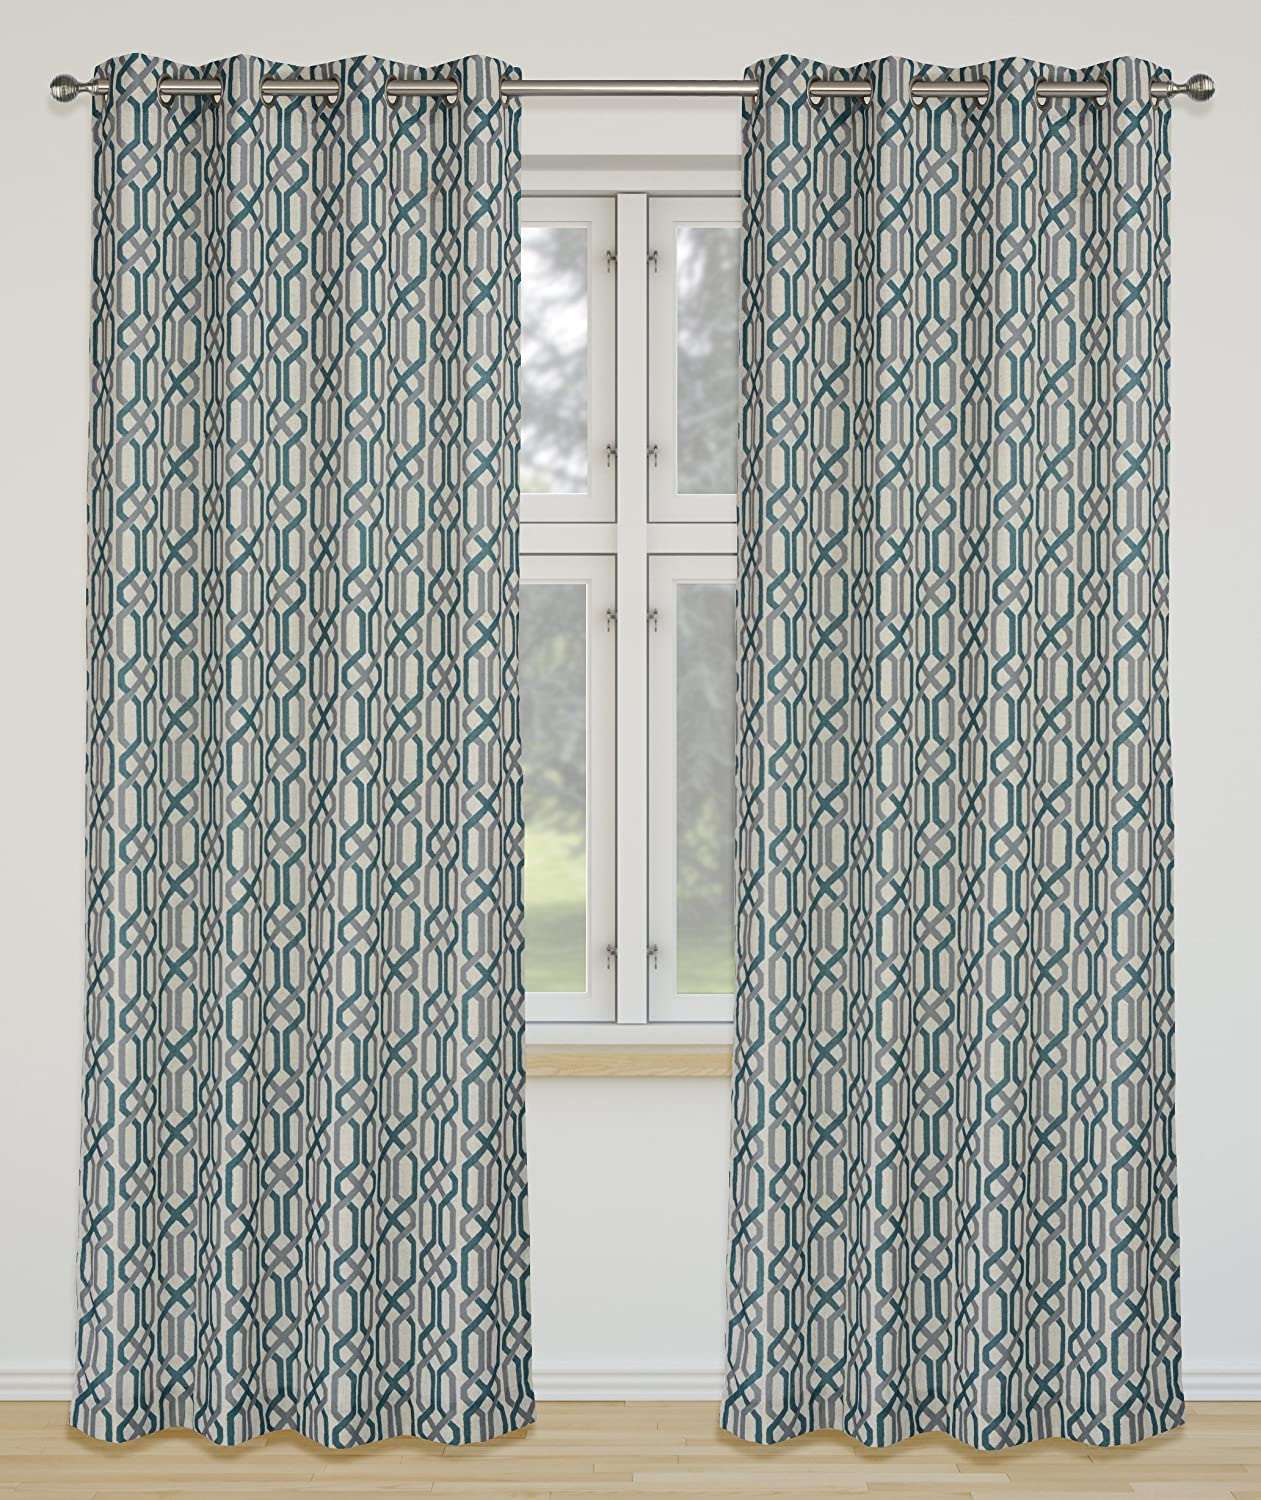 LJ Home Fashions Linked Geometric Linen Grommet Curtain Panels (Set of 2), 52x95-in, Ivory Sea bluee Grey